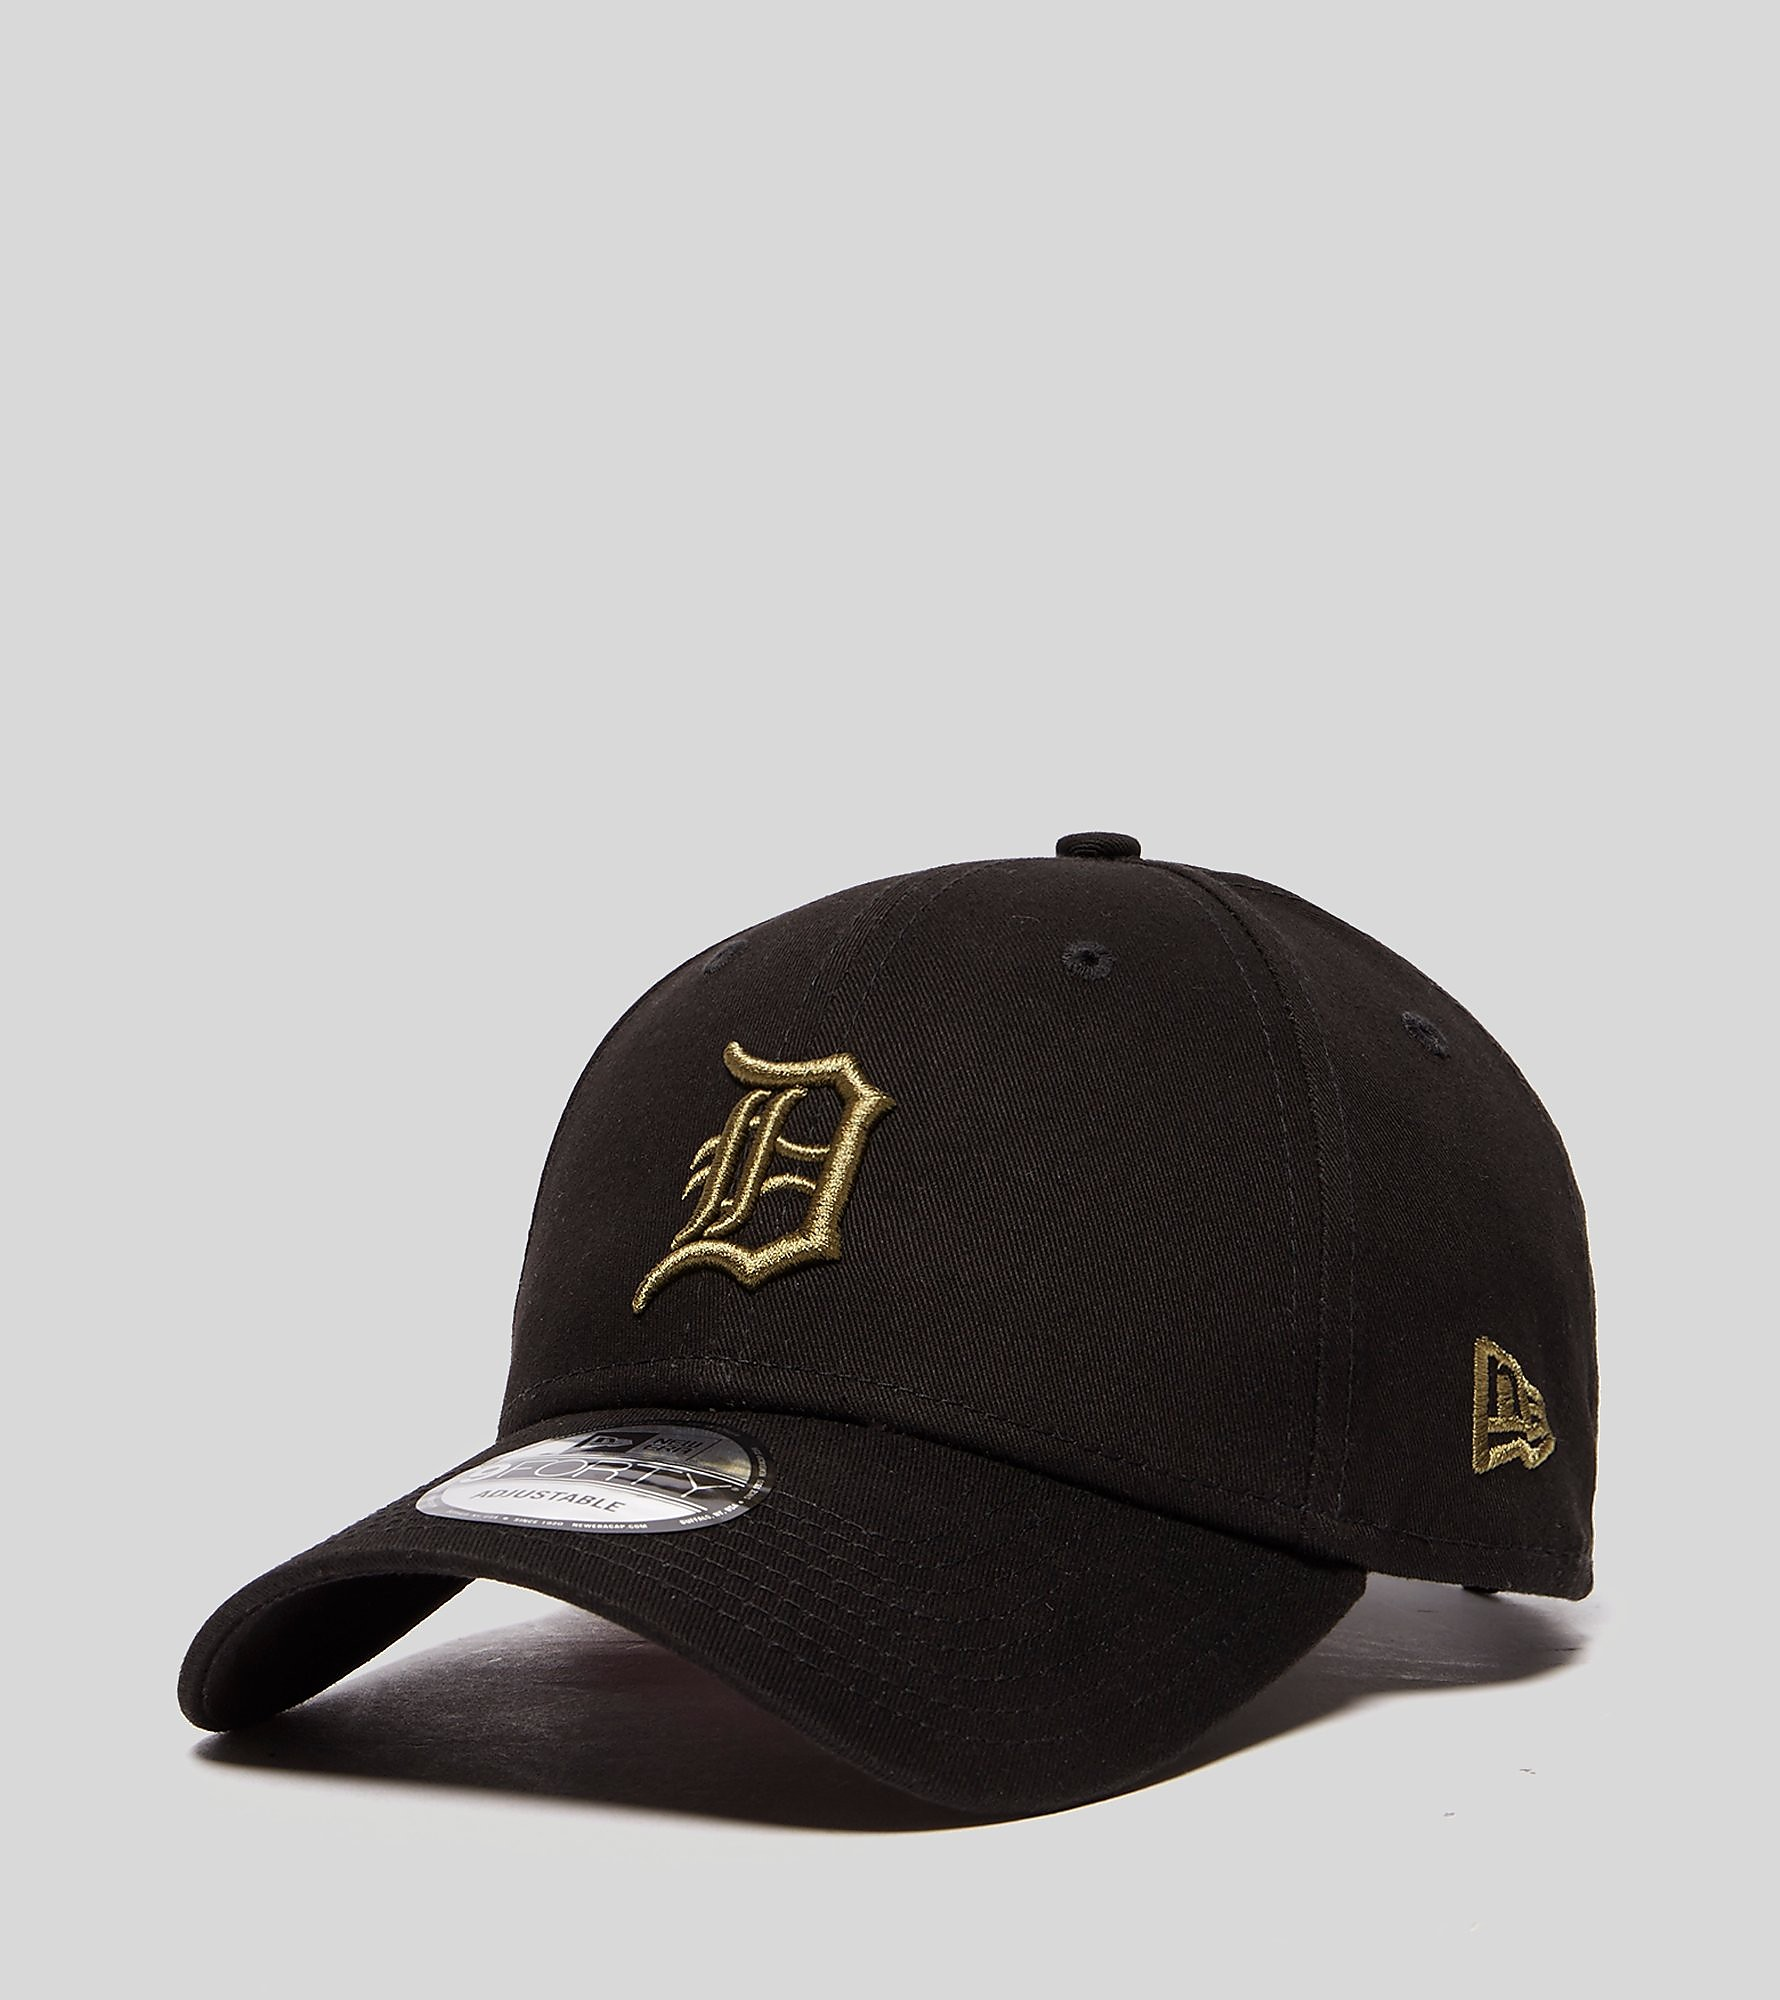 New Era 9FORTY Detroit Cap